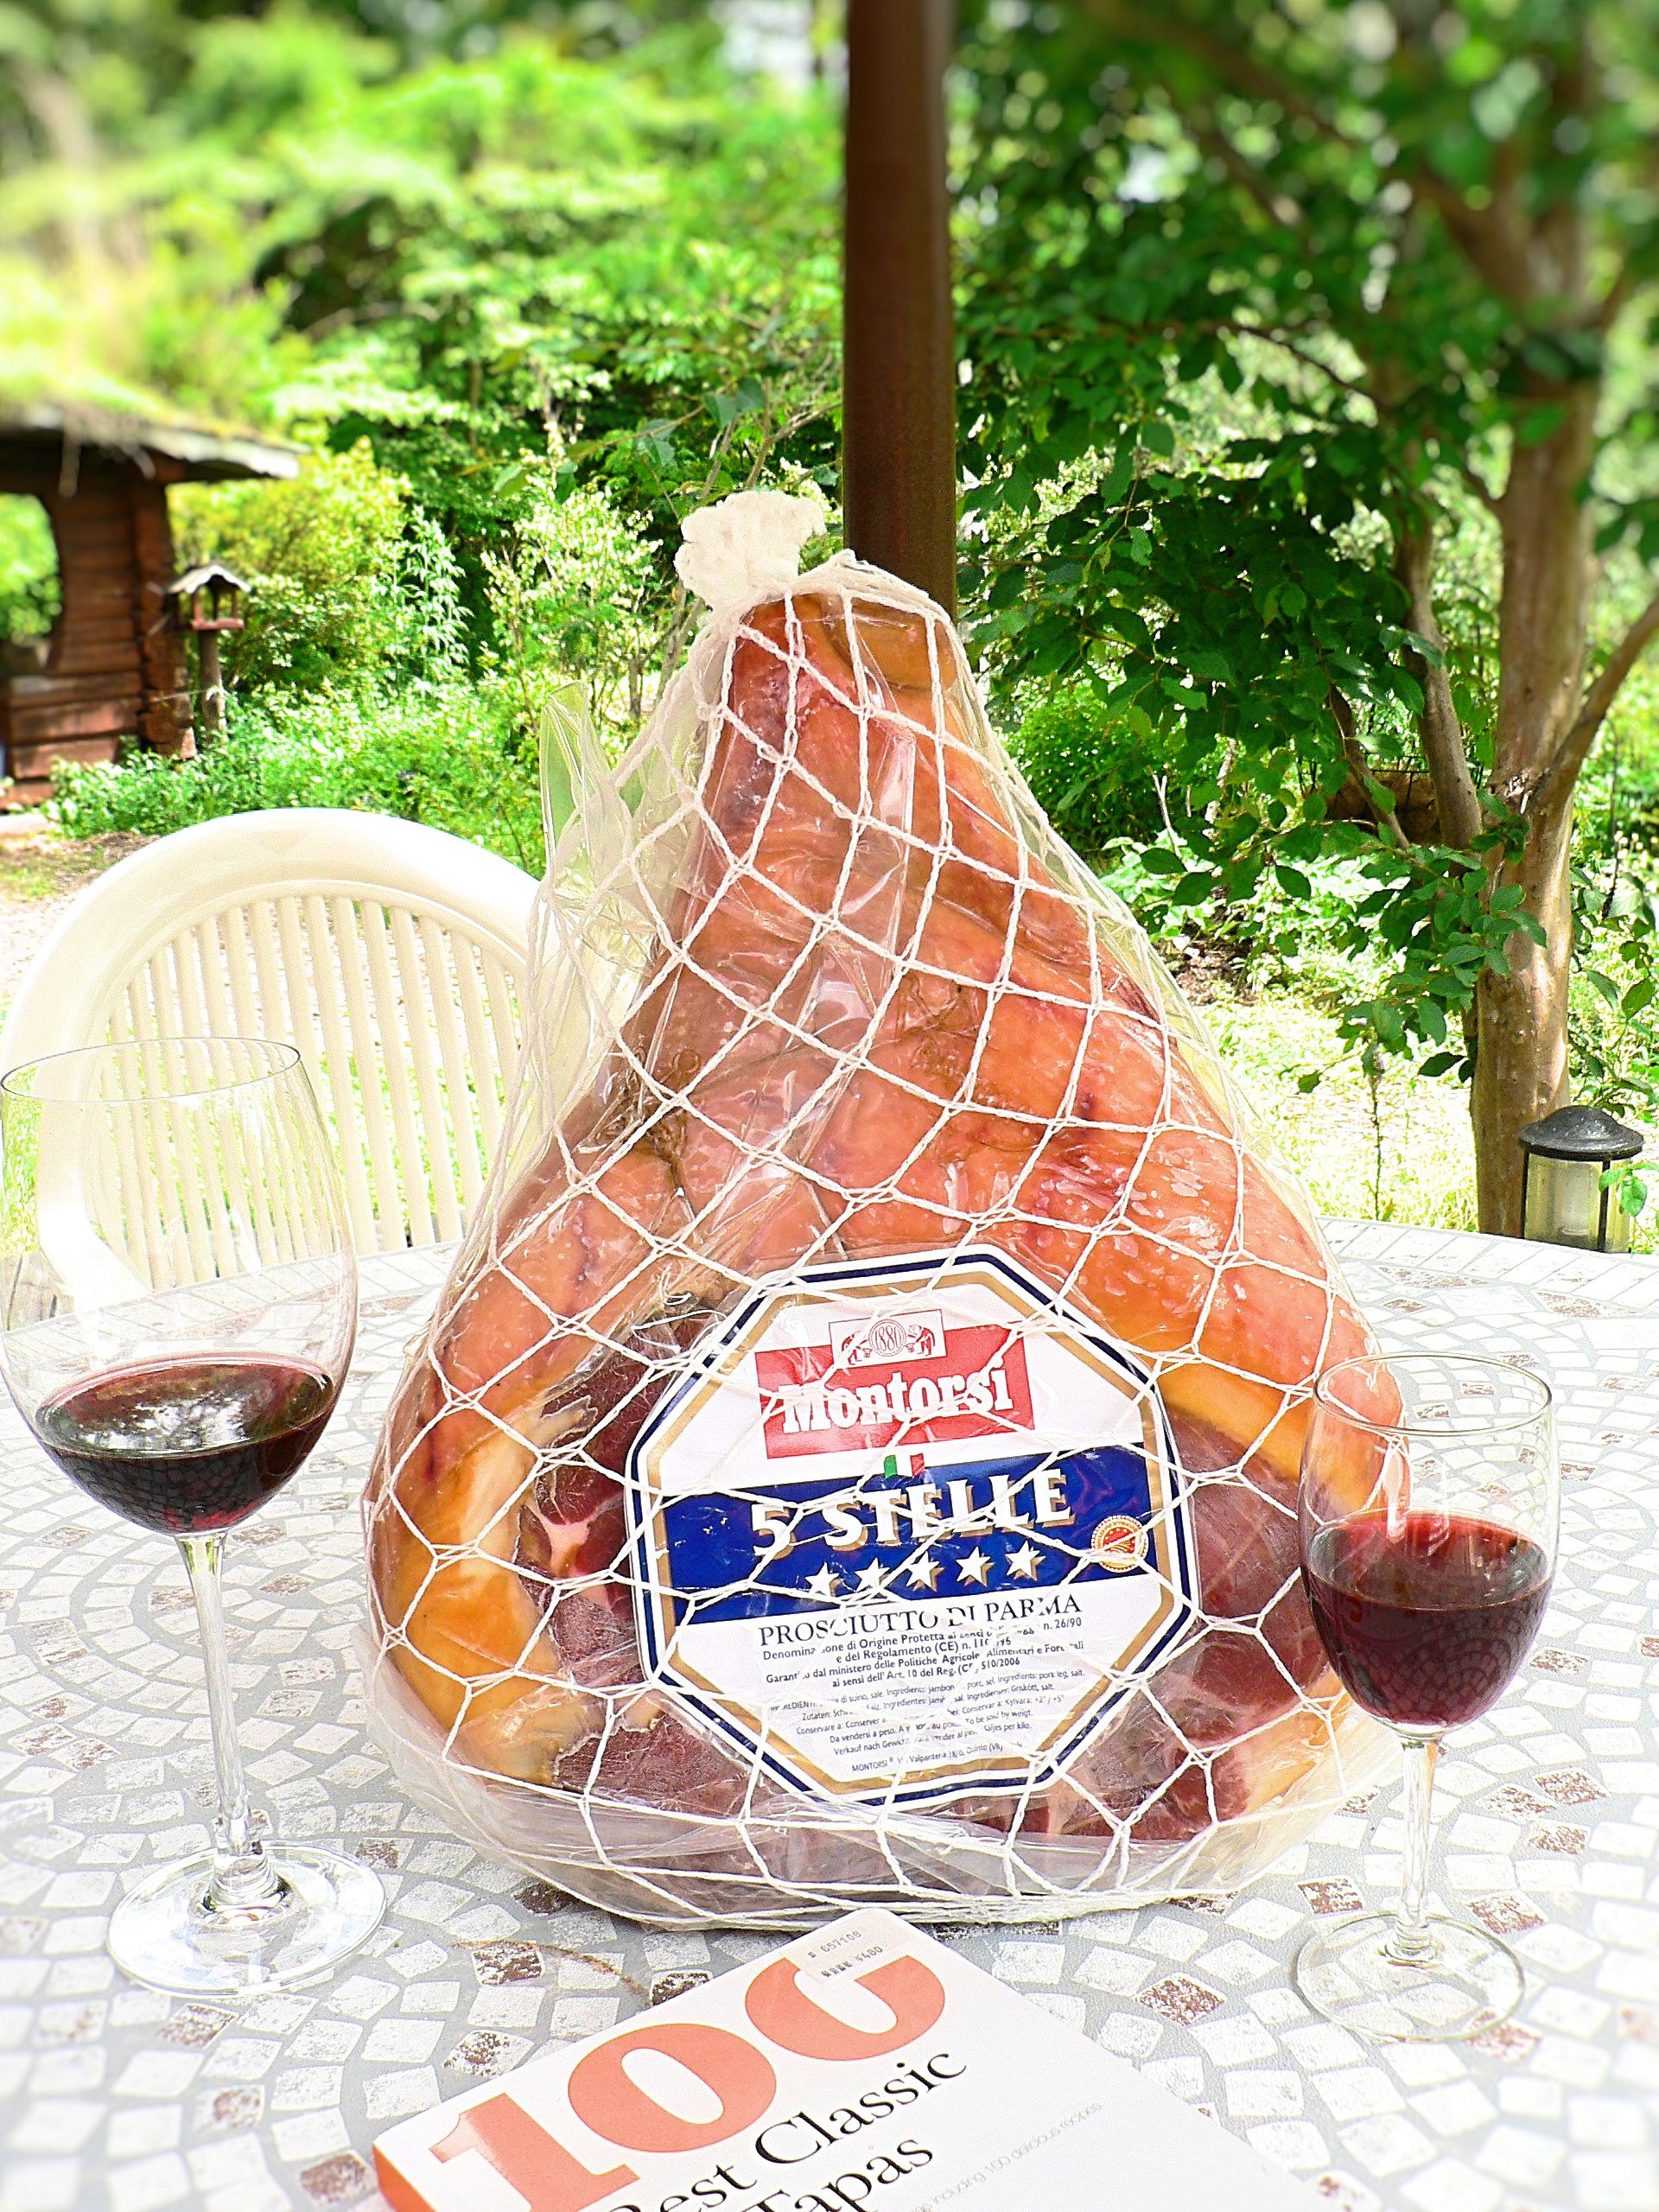 Raw ham made in Parma in Italy will be served cut fresh; go enjoy it with wine♪